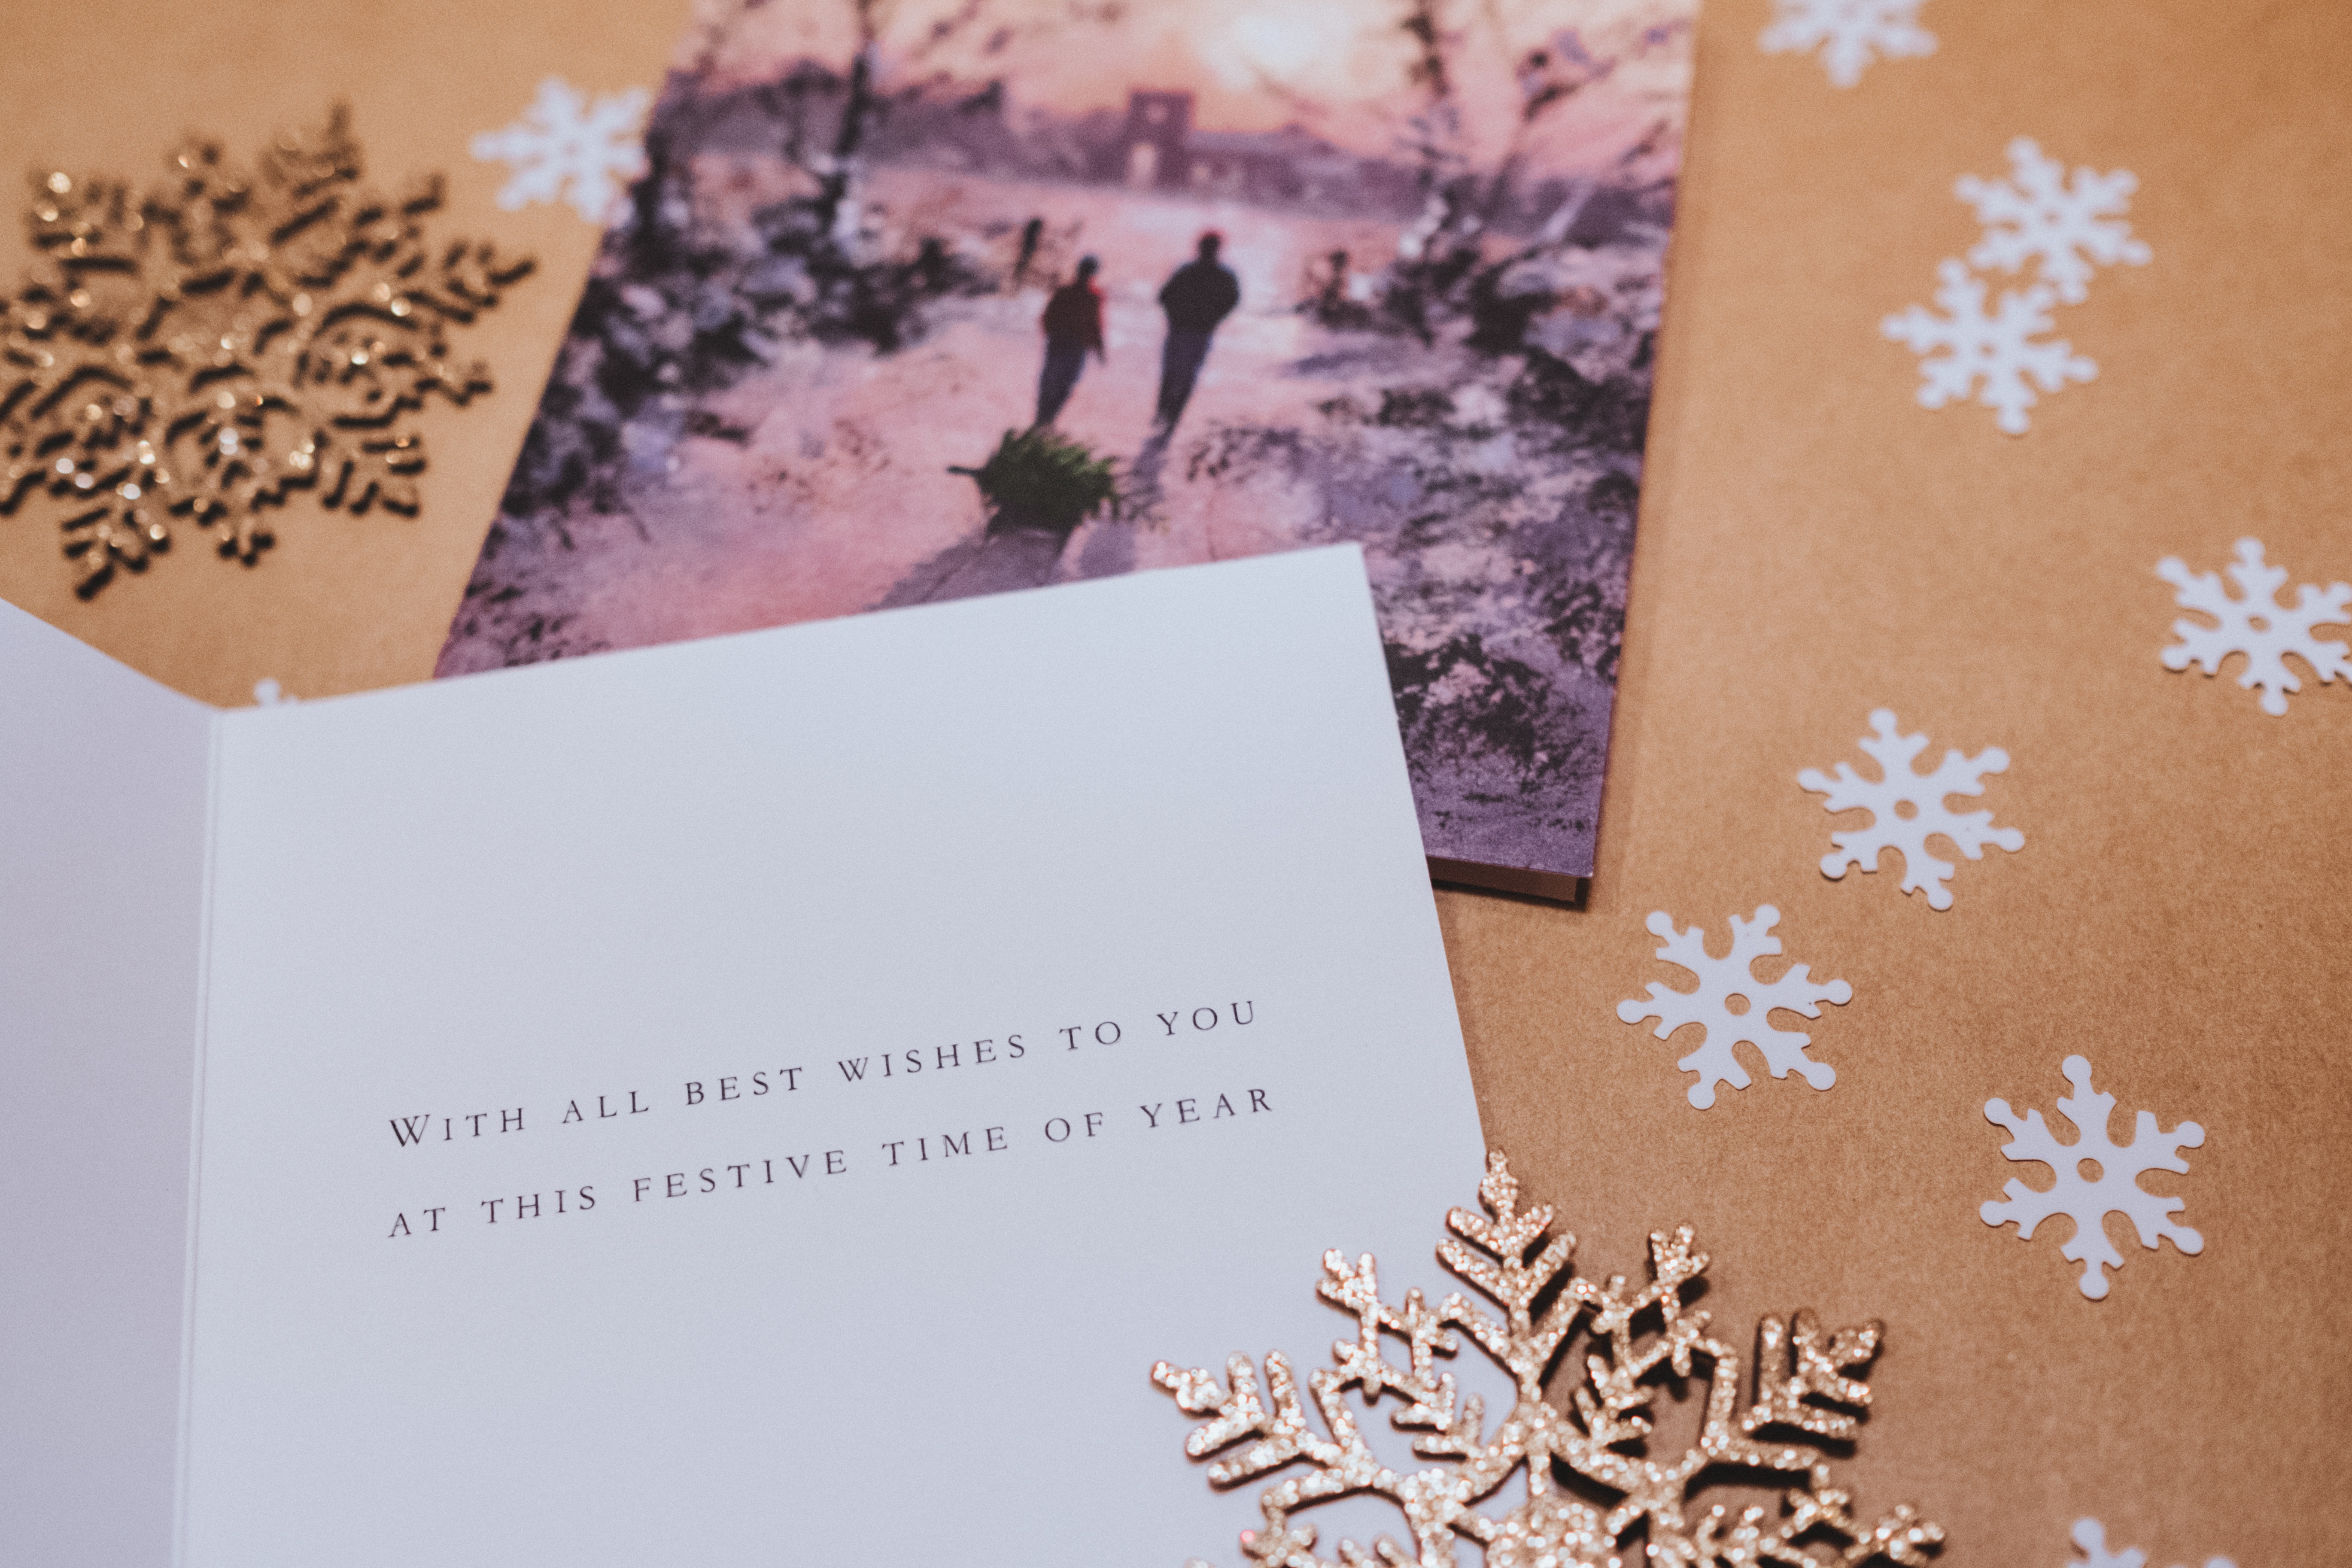 White Paper With Black Printed Text, Card, Paper, Write, Winter, HQ Photo